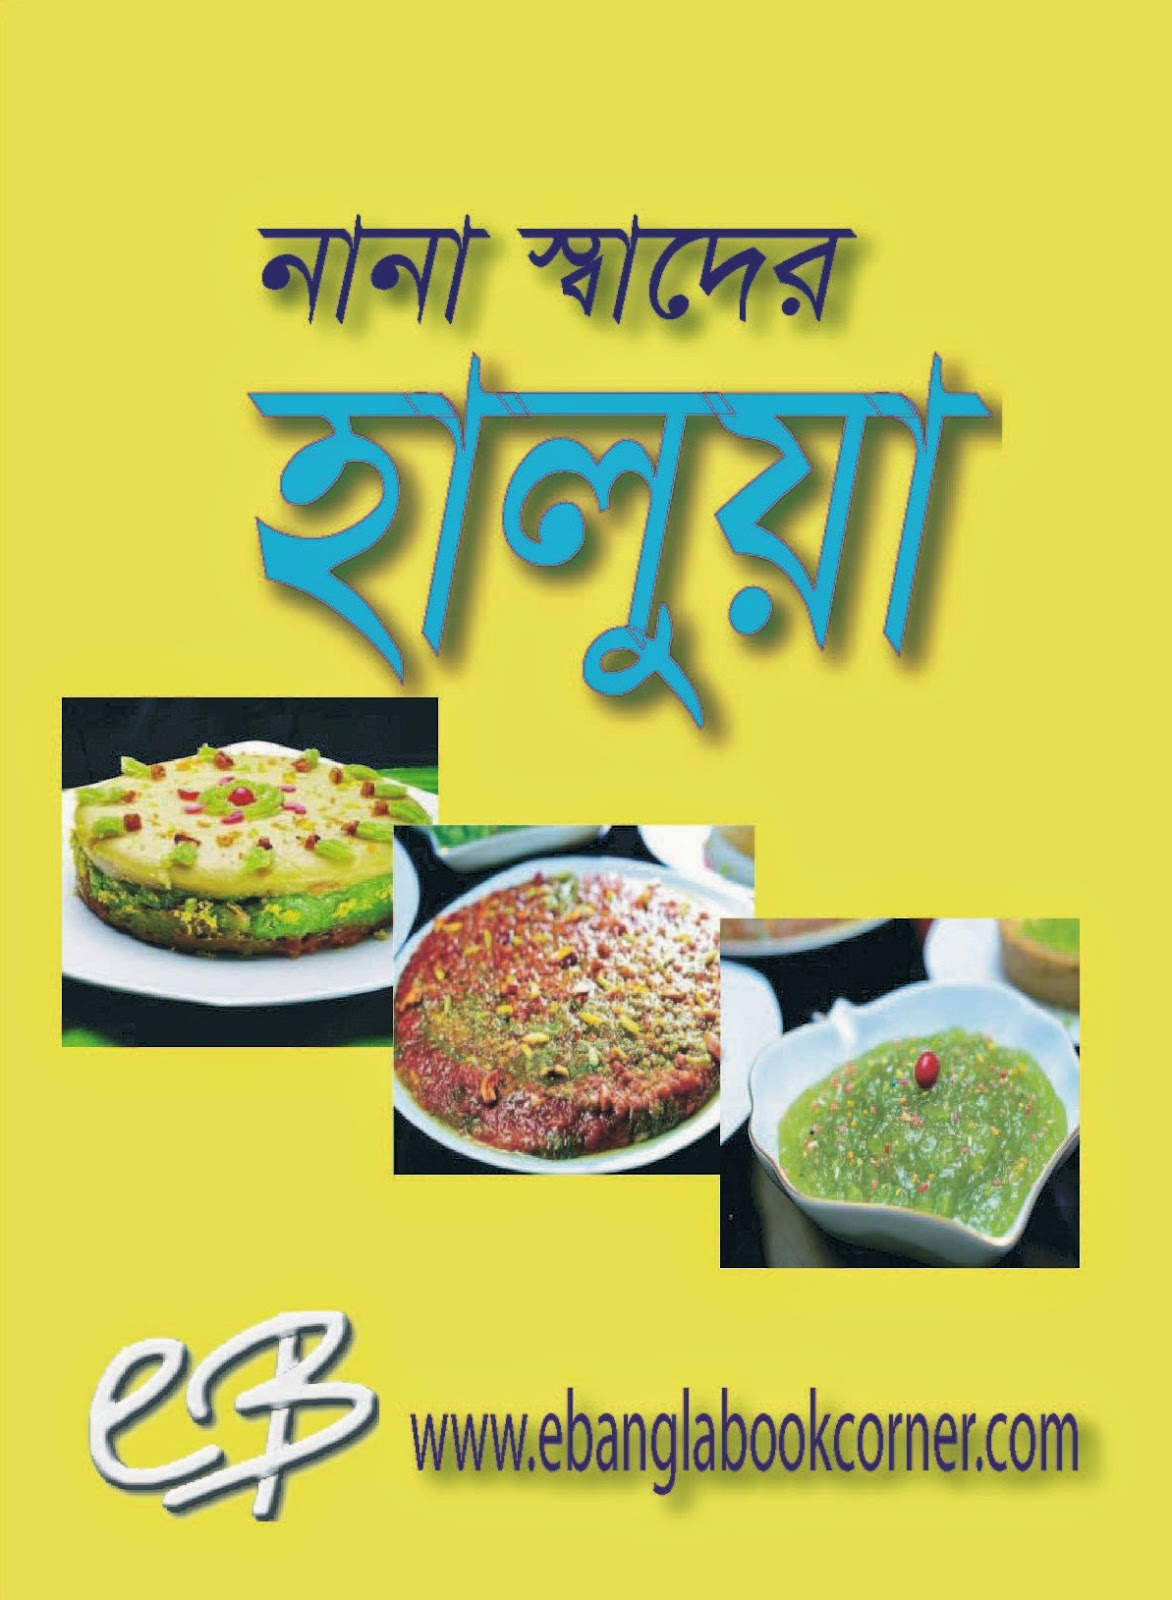 Bangla e books free downloaddownload pdf ebooks all types august bengali recipe book nana swader haluya pdf download forumfinder